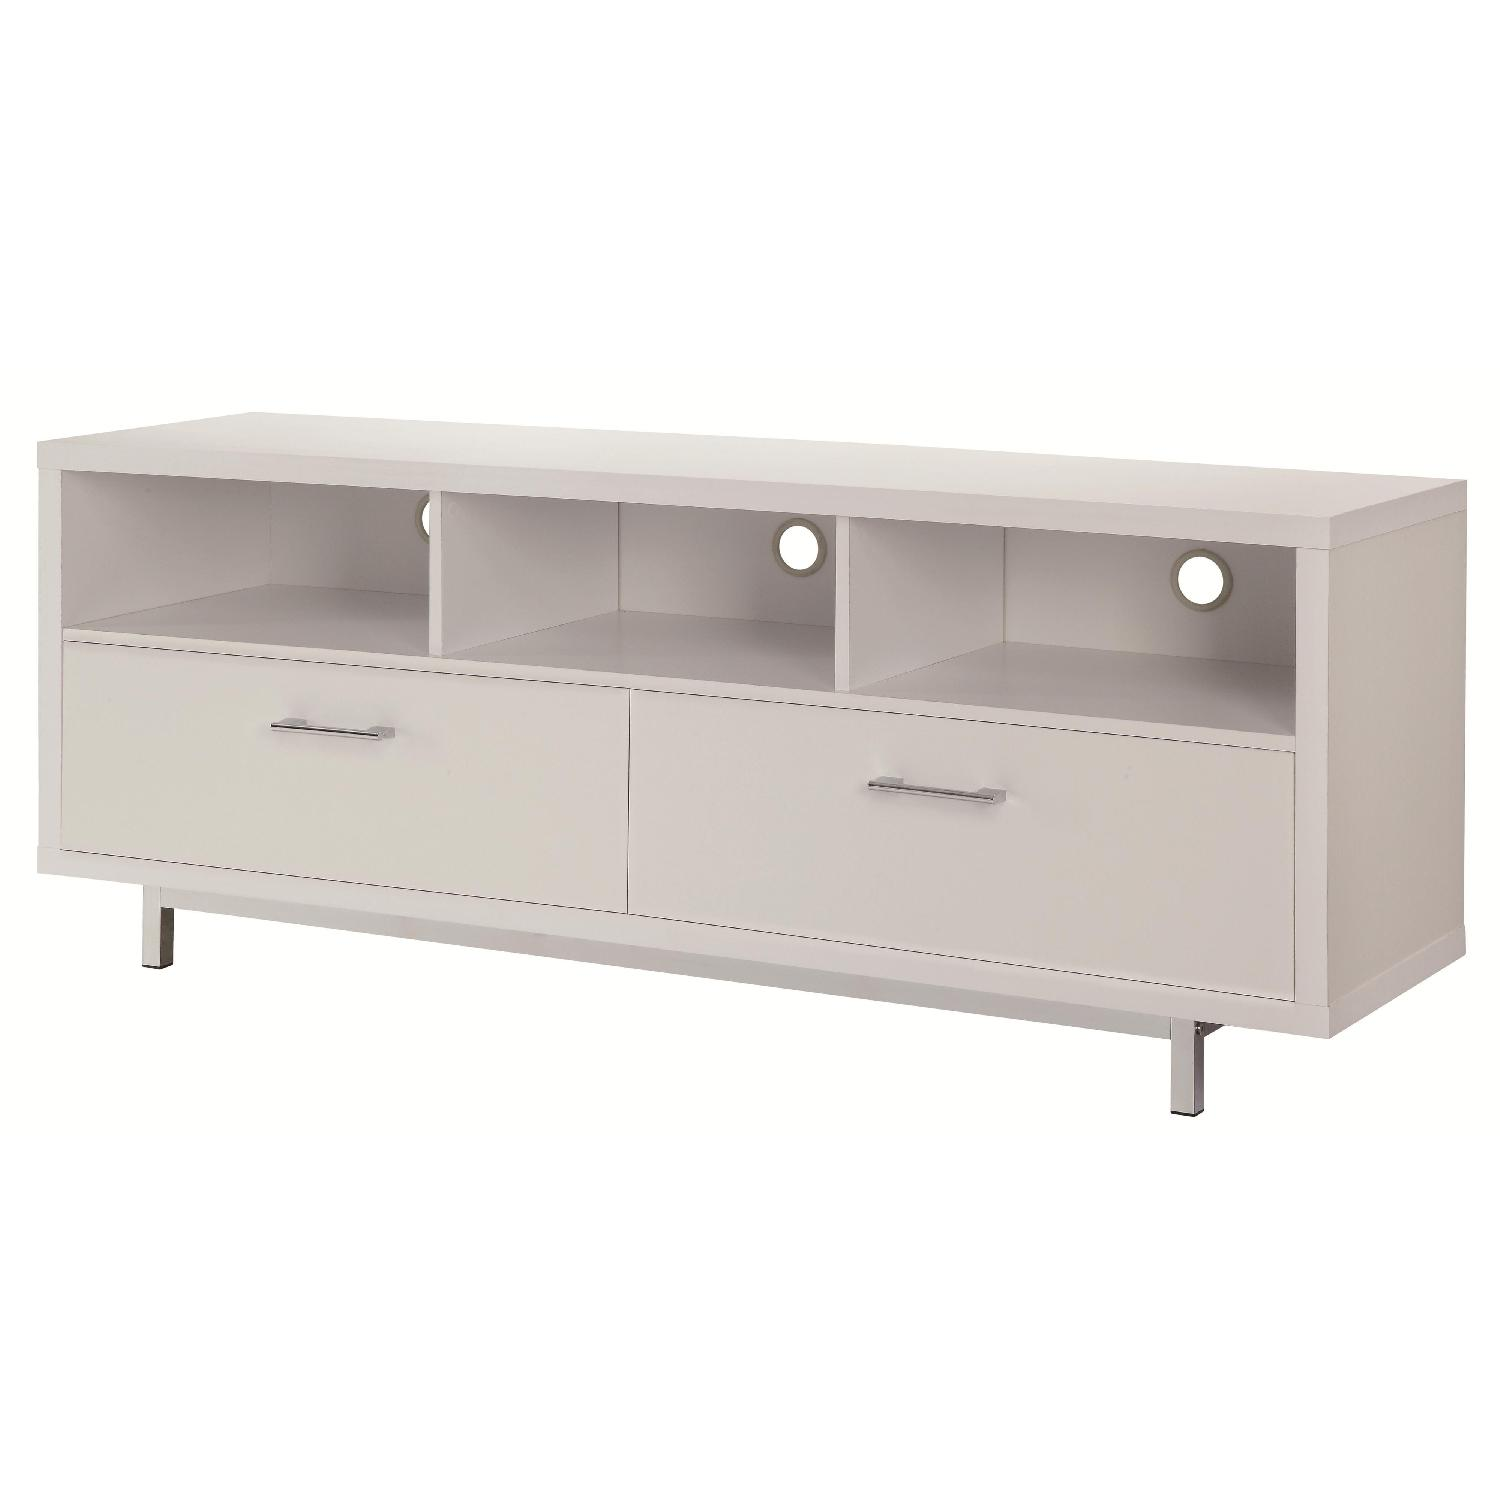 Modern TV Stand With 3 Media Shelves & 2 Utility Drawers w/ Silver Hardware in Matte White Finish - image-0